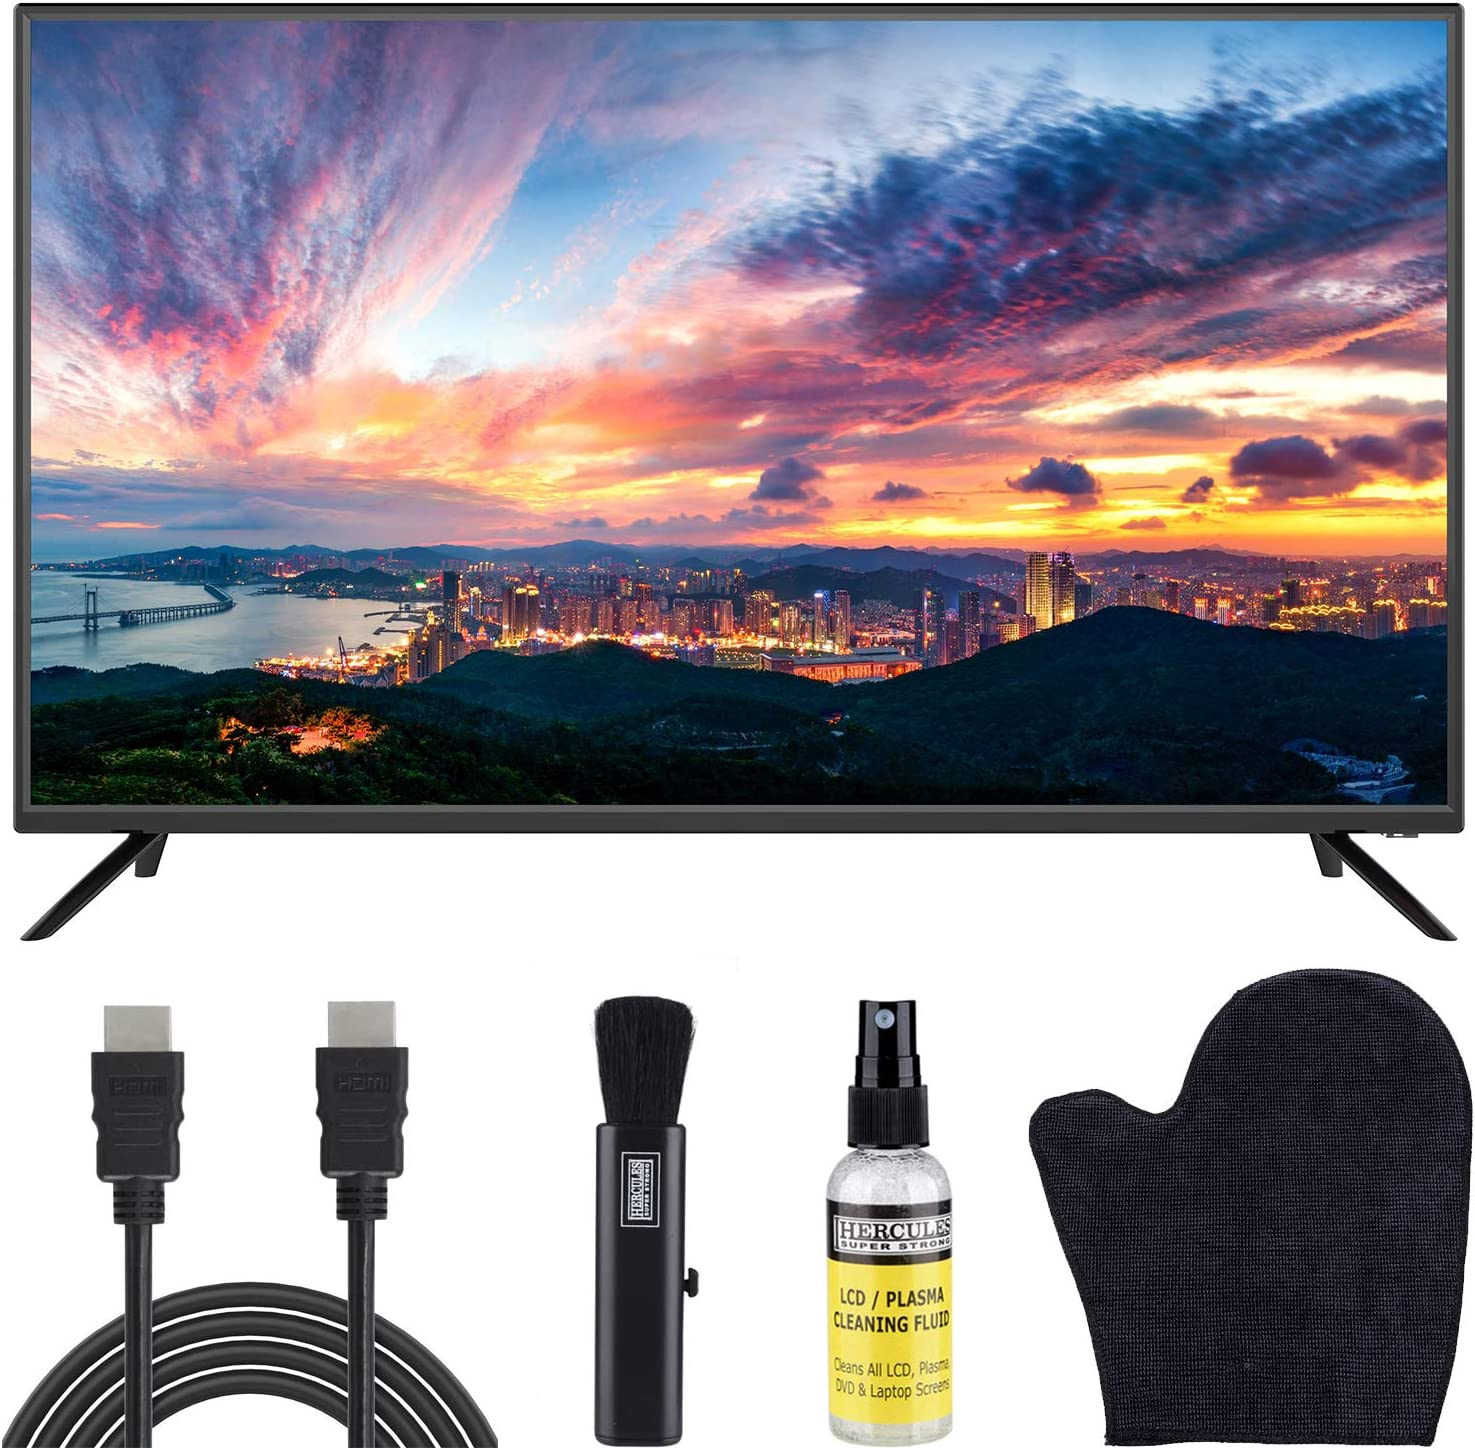 Sansui 40-Inch 1080p FHD DLED TV (S40P28F) Lightweight Slim Built-in with HDMI, USB, VGA, High Resolution Bundle with 6.5 ft HDMI Cable and LCD Screen Cleaning Kit